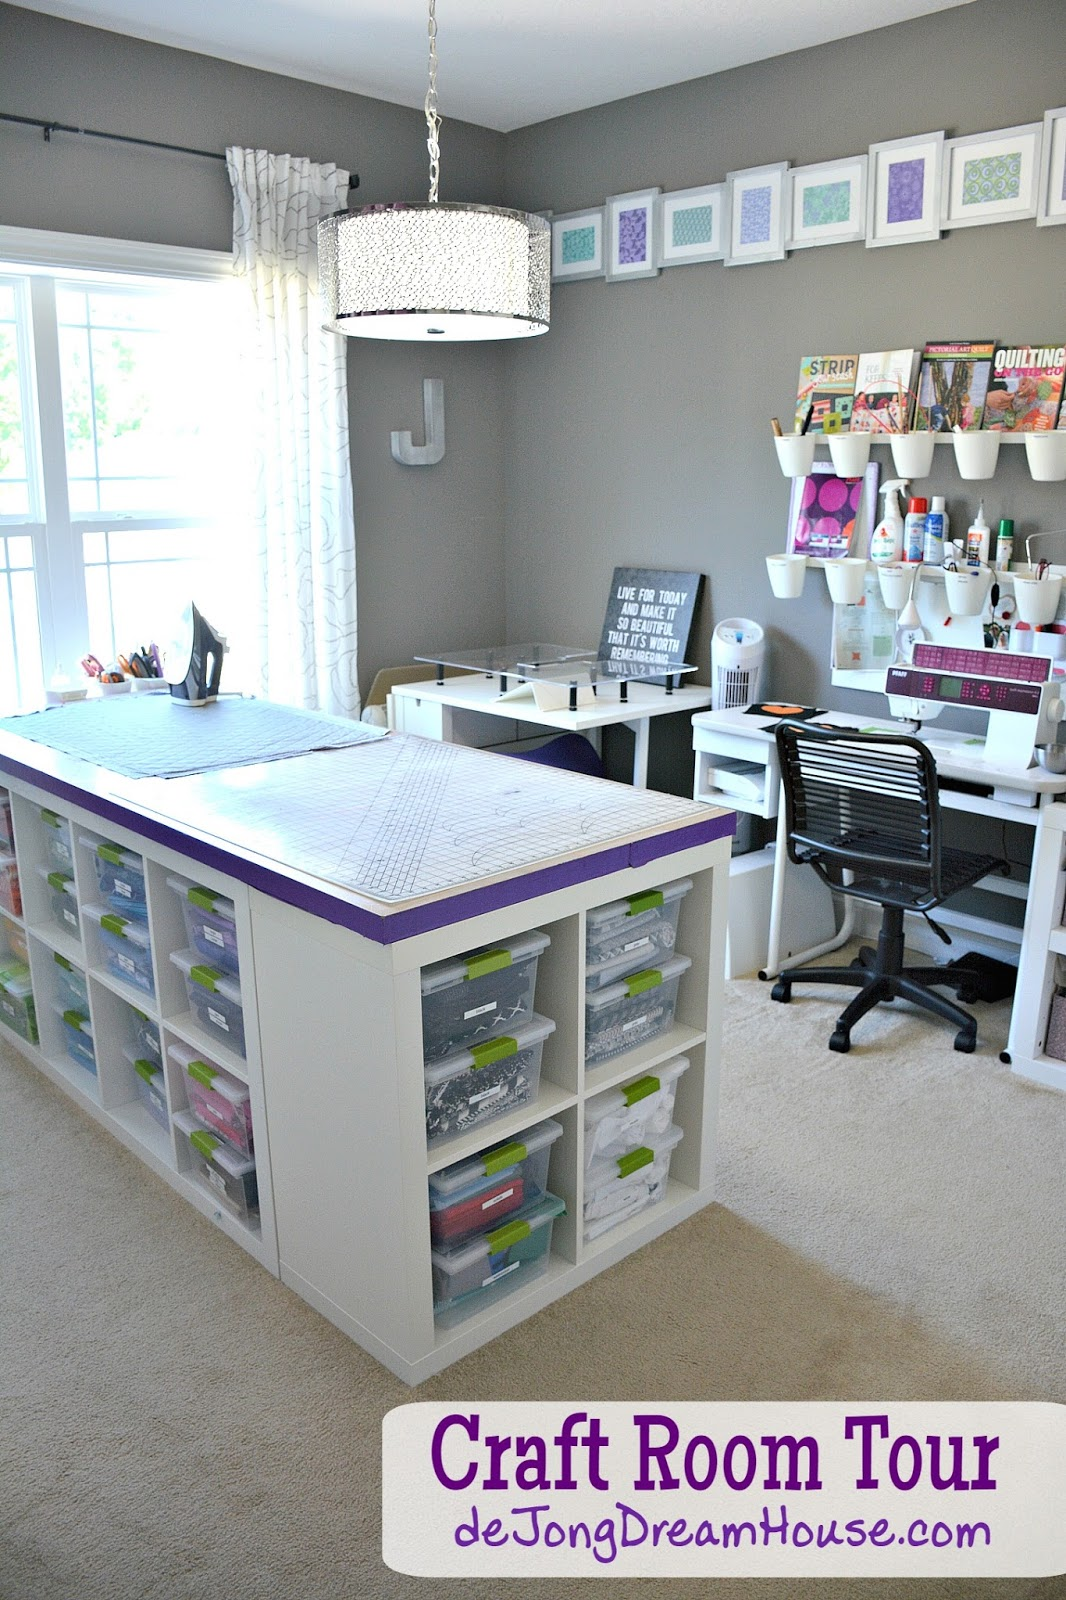 De jong dream house my new improved craft room for House plans with craft room